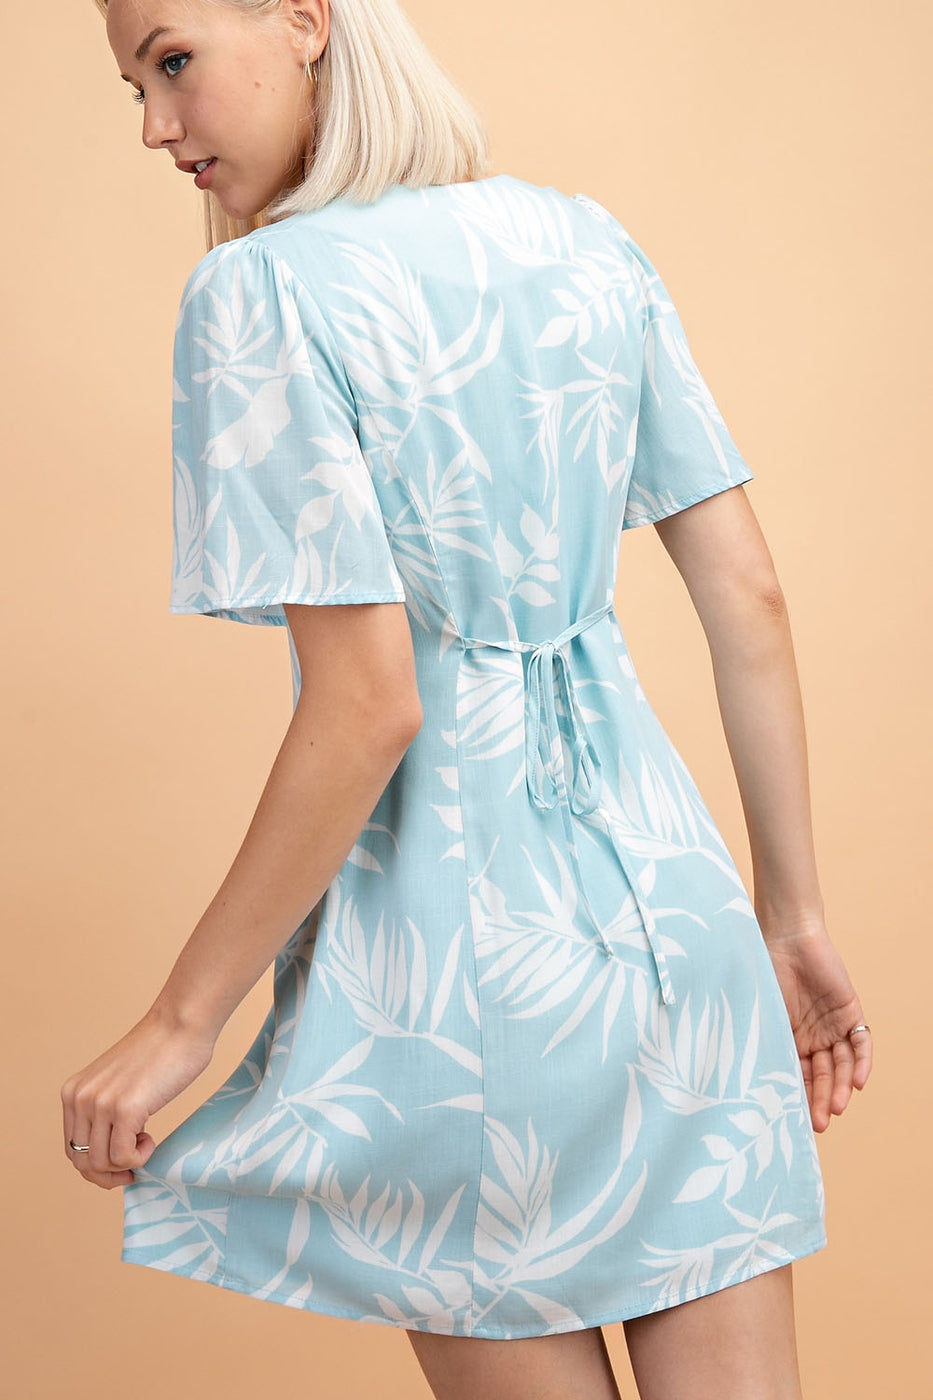 Hawaiian Print Button Down Dress - Siin Bees